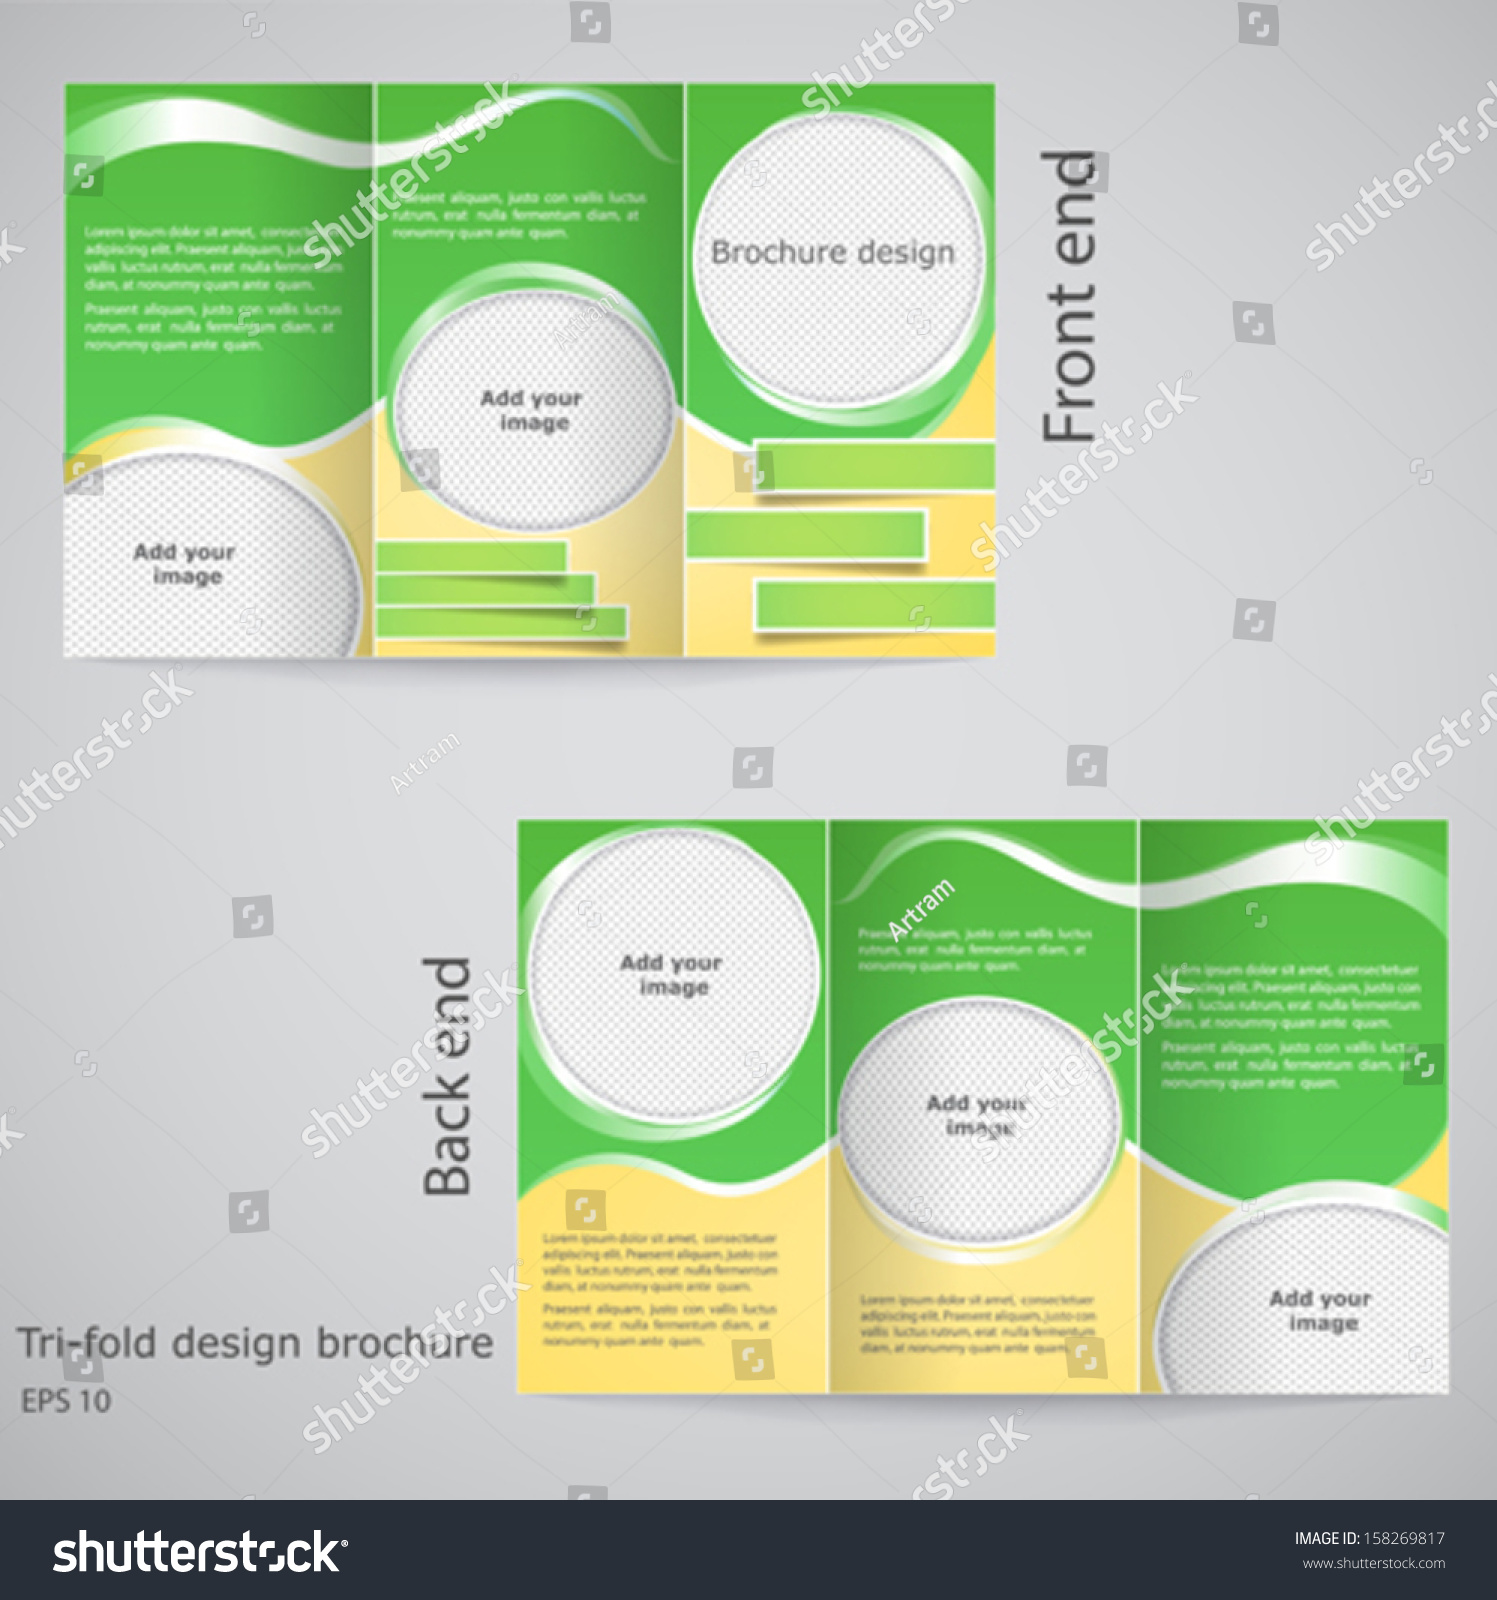 Comfortable 1 Page Proposal Template Thin 1 Week Schedule Template Clean 110 Block Label Template 1st Birthday Invite Templates Young 2 Page Resume Format Doc Yellow2 Page Resume Template Word Trifold Brochure Design Brochure Template Design Stock Vector ..